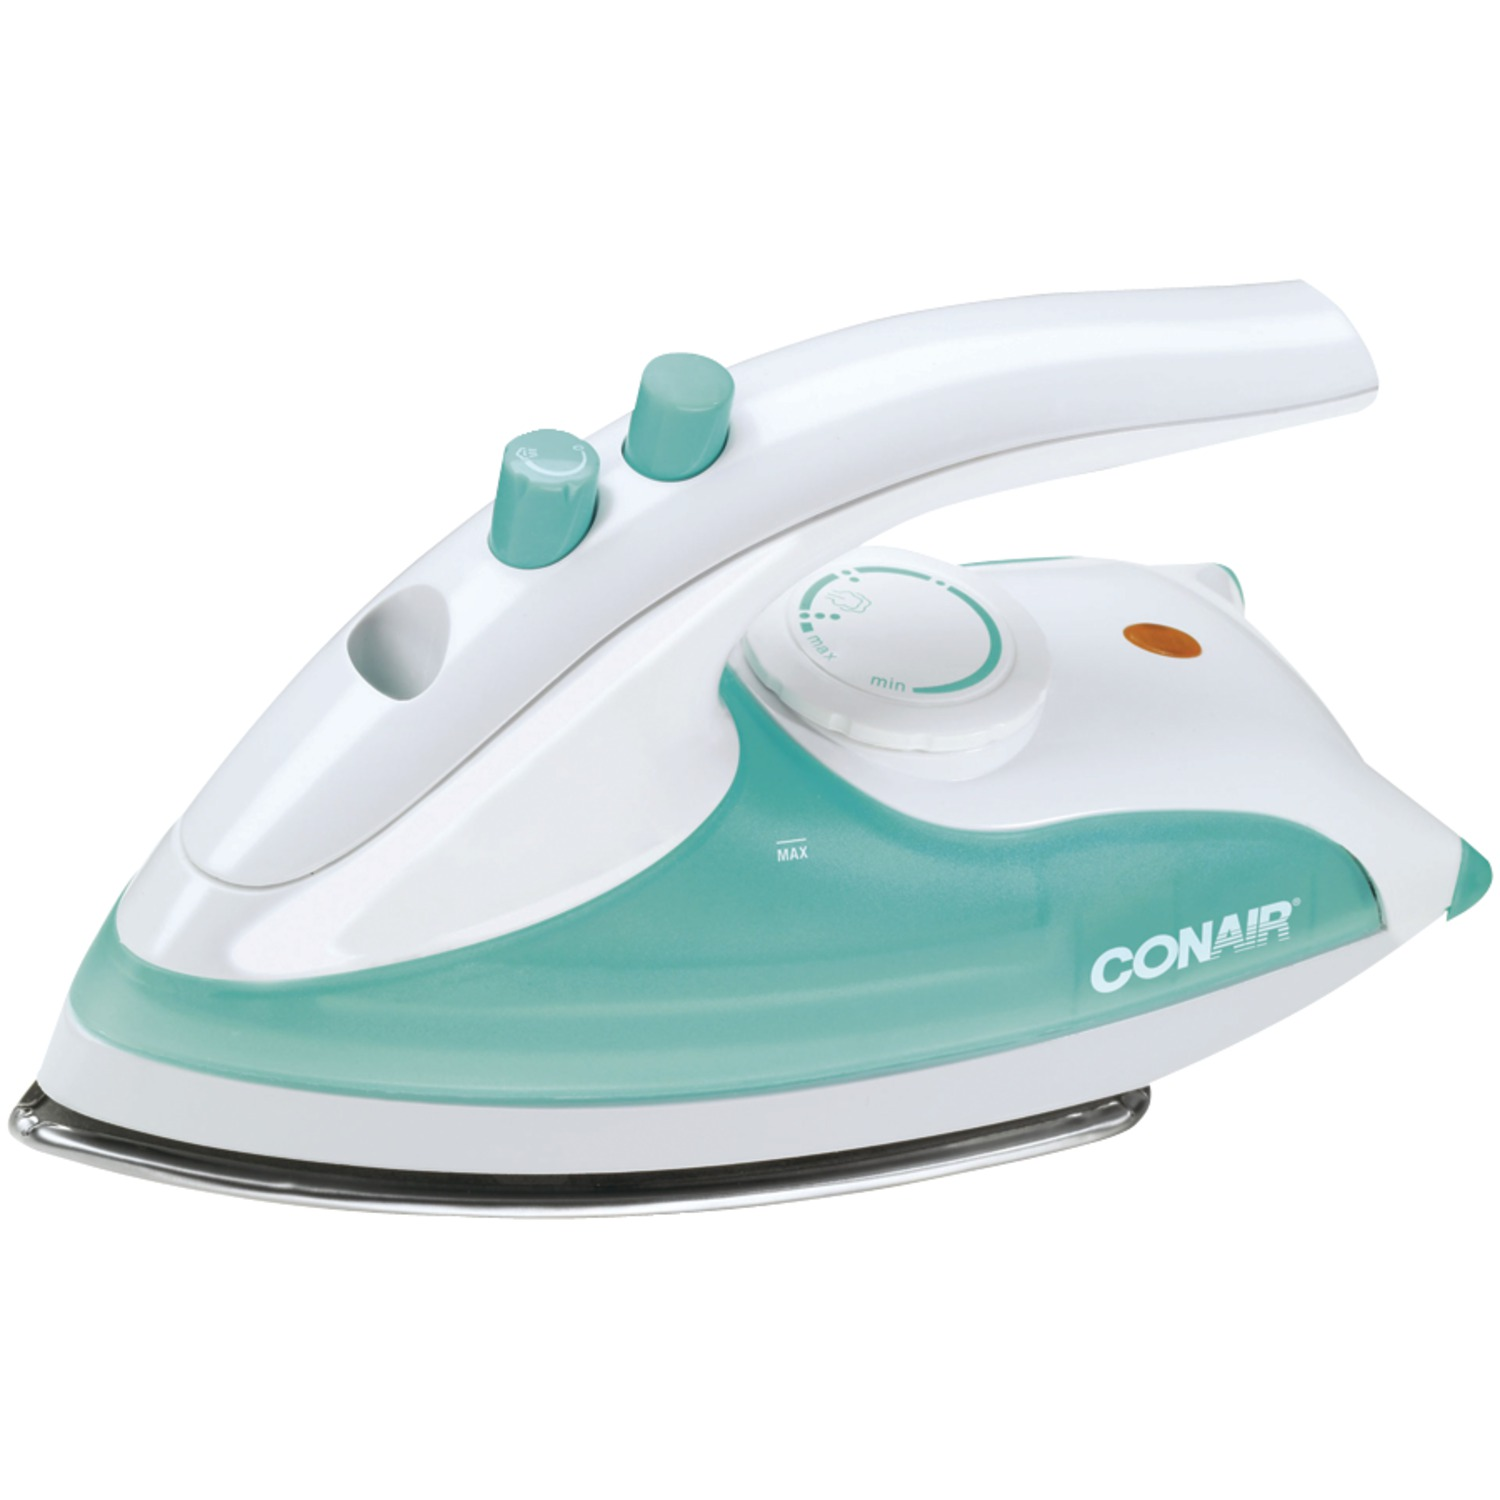 conair handheld steamer instructions